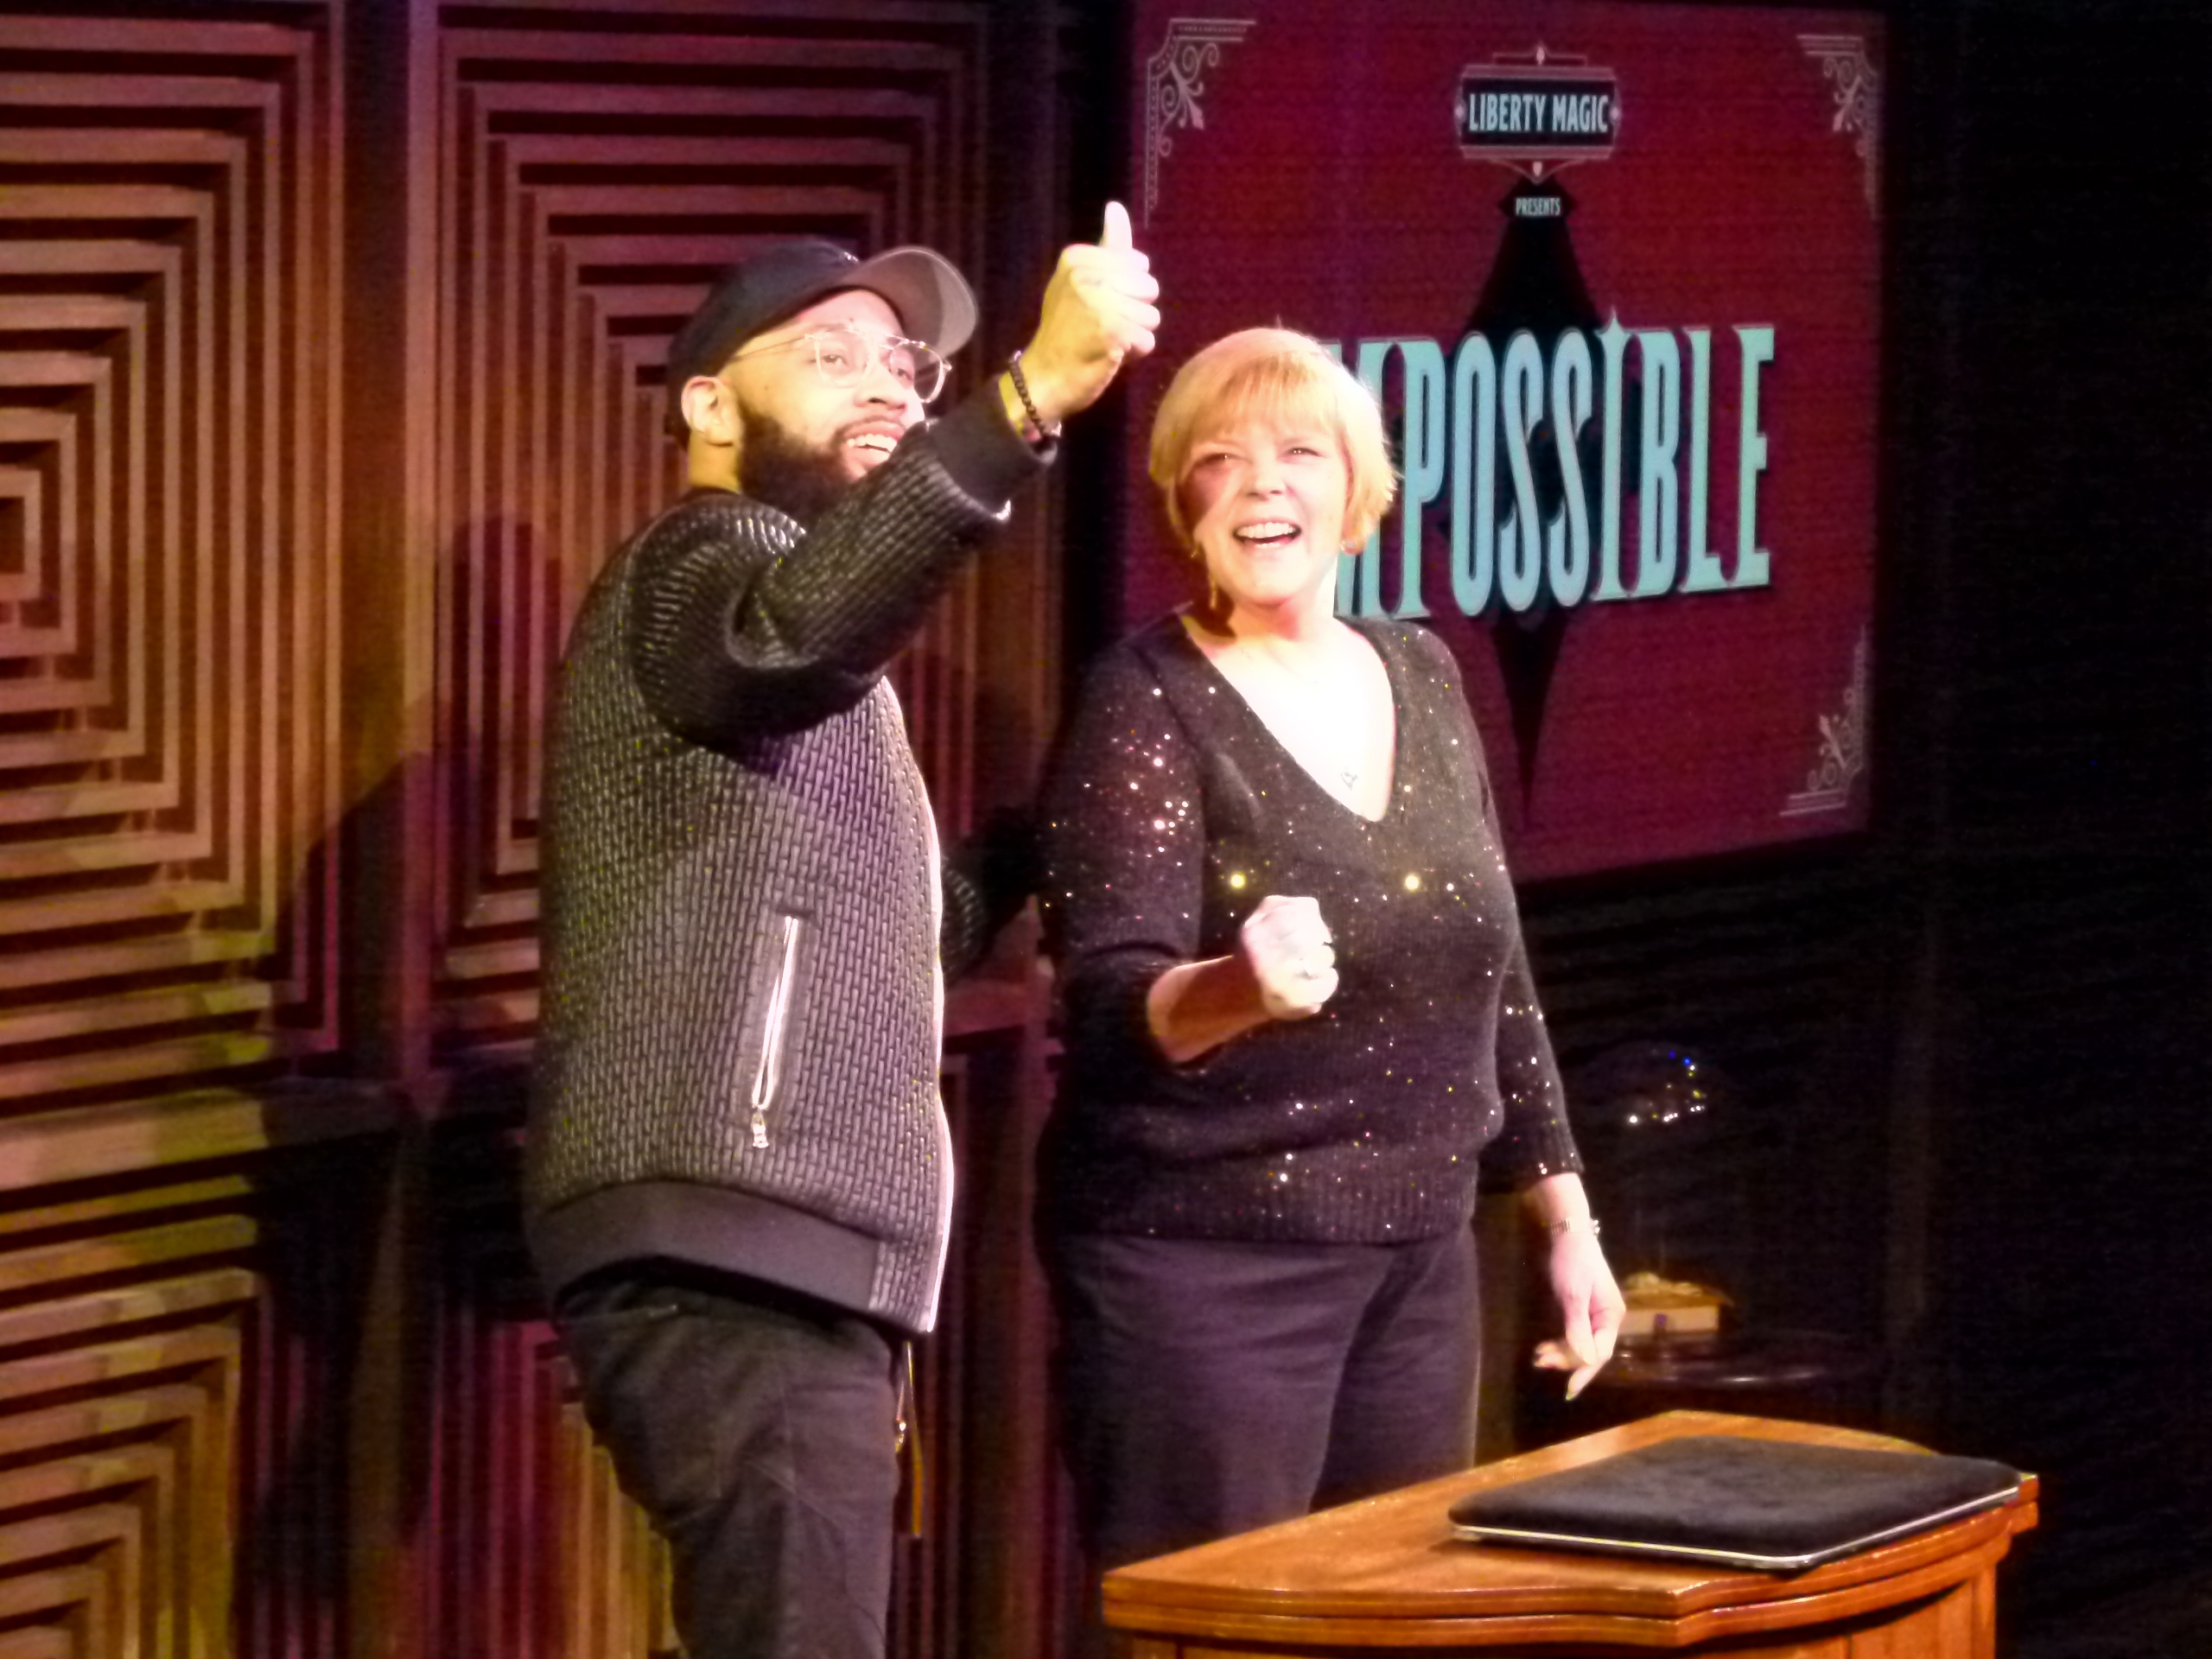 Jones and Lynne Fairman, his audience assistant, do some magic with rubber balls.